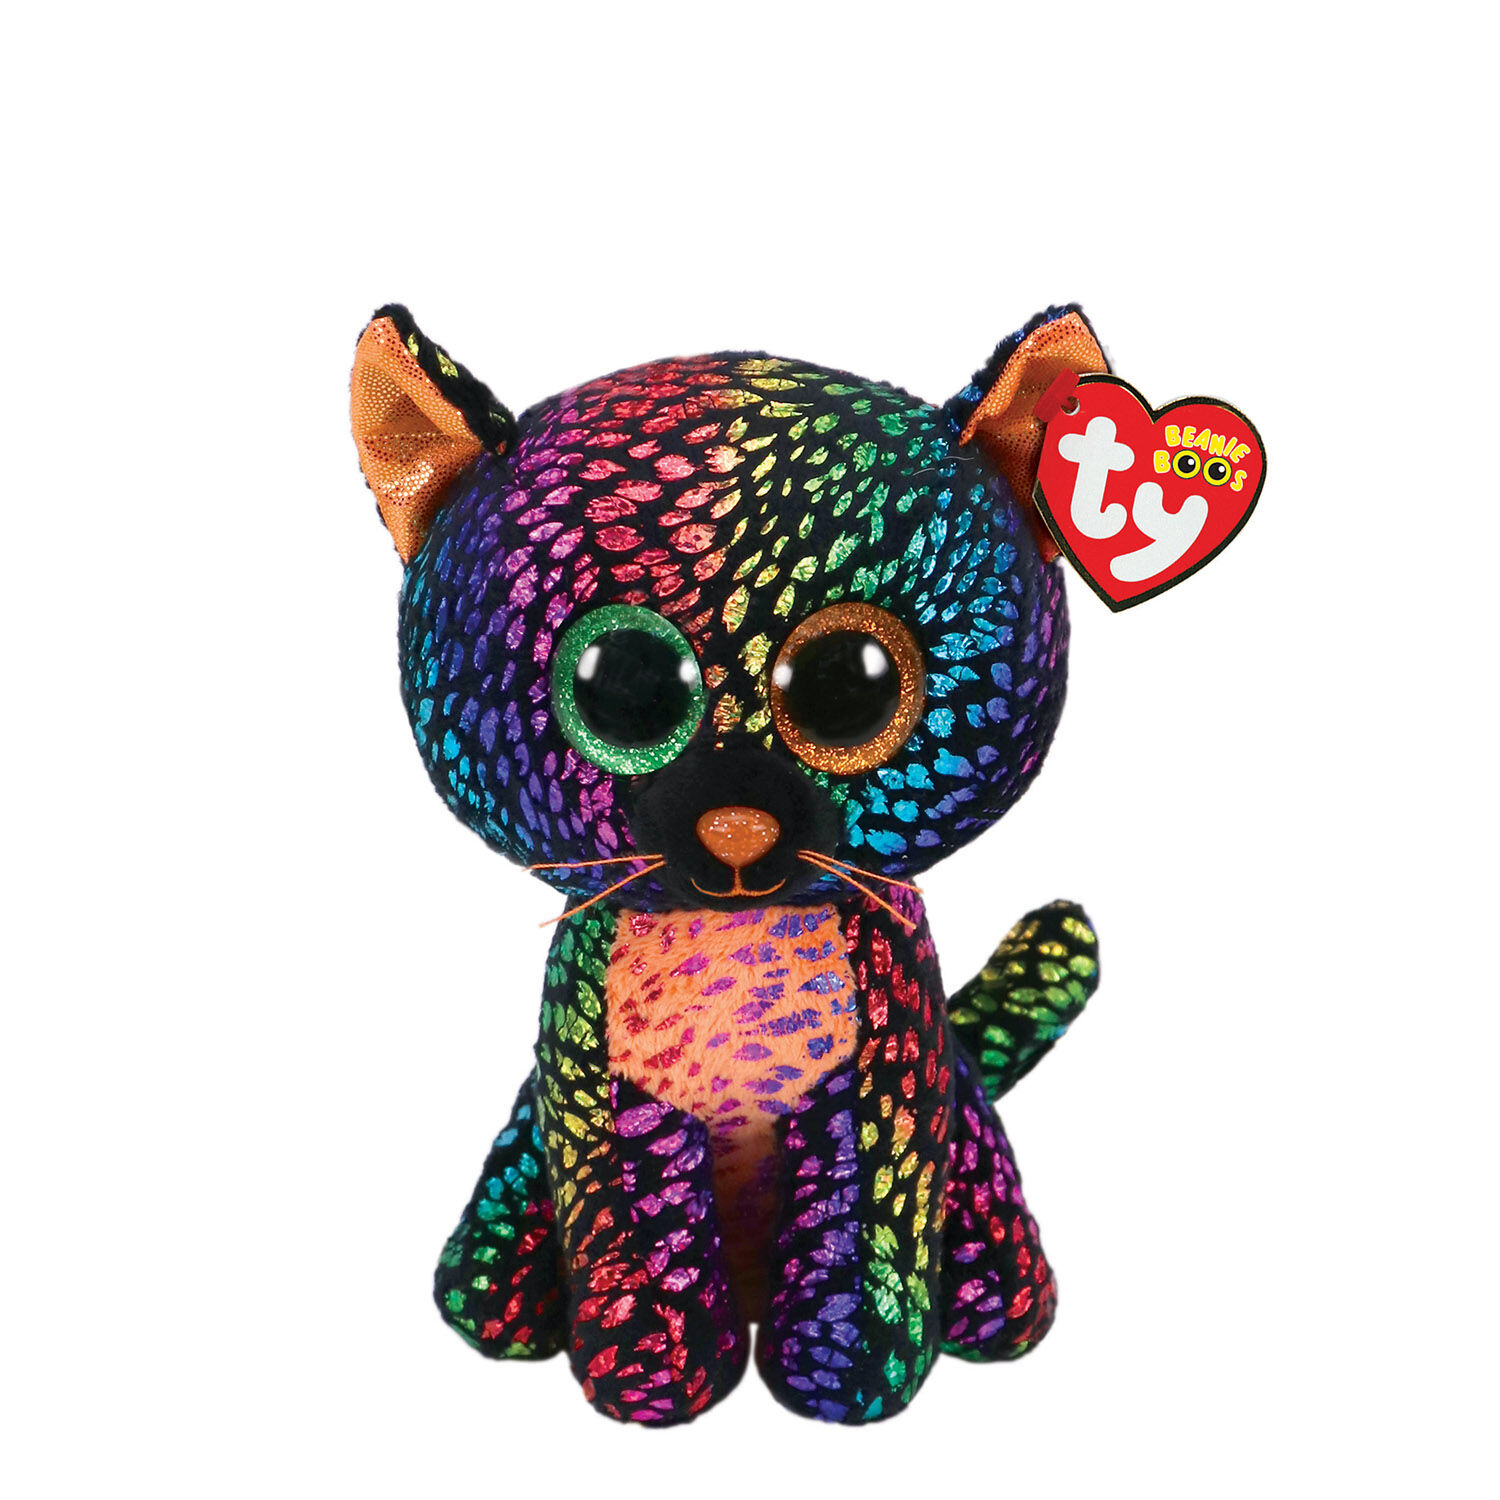 Cat Plush Toy Ty Beanie Boo Small Spellbound The Cat Plush Toy